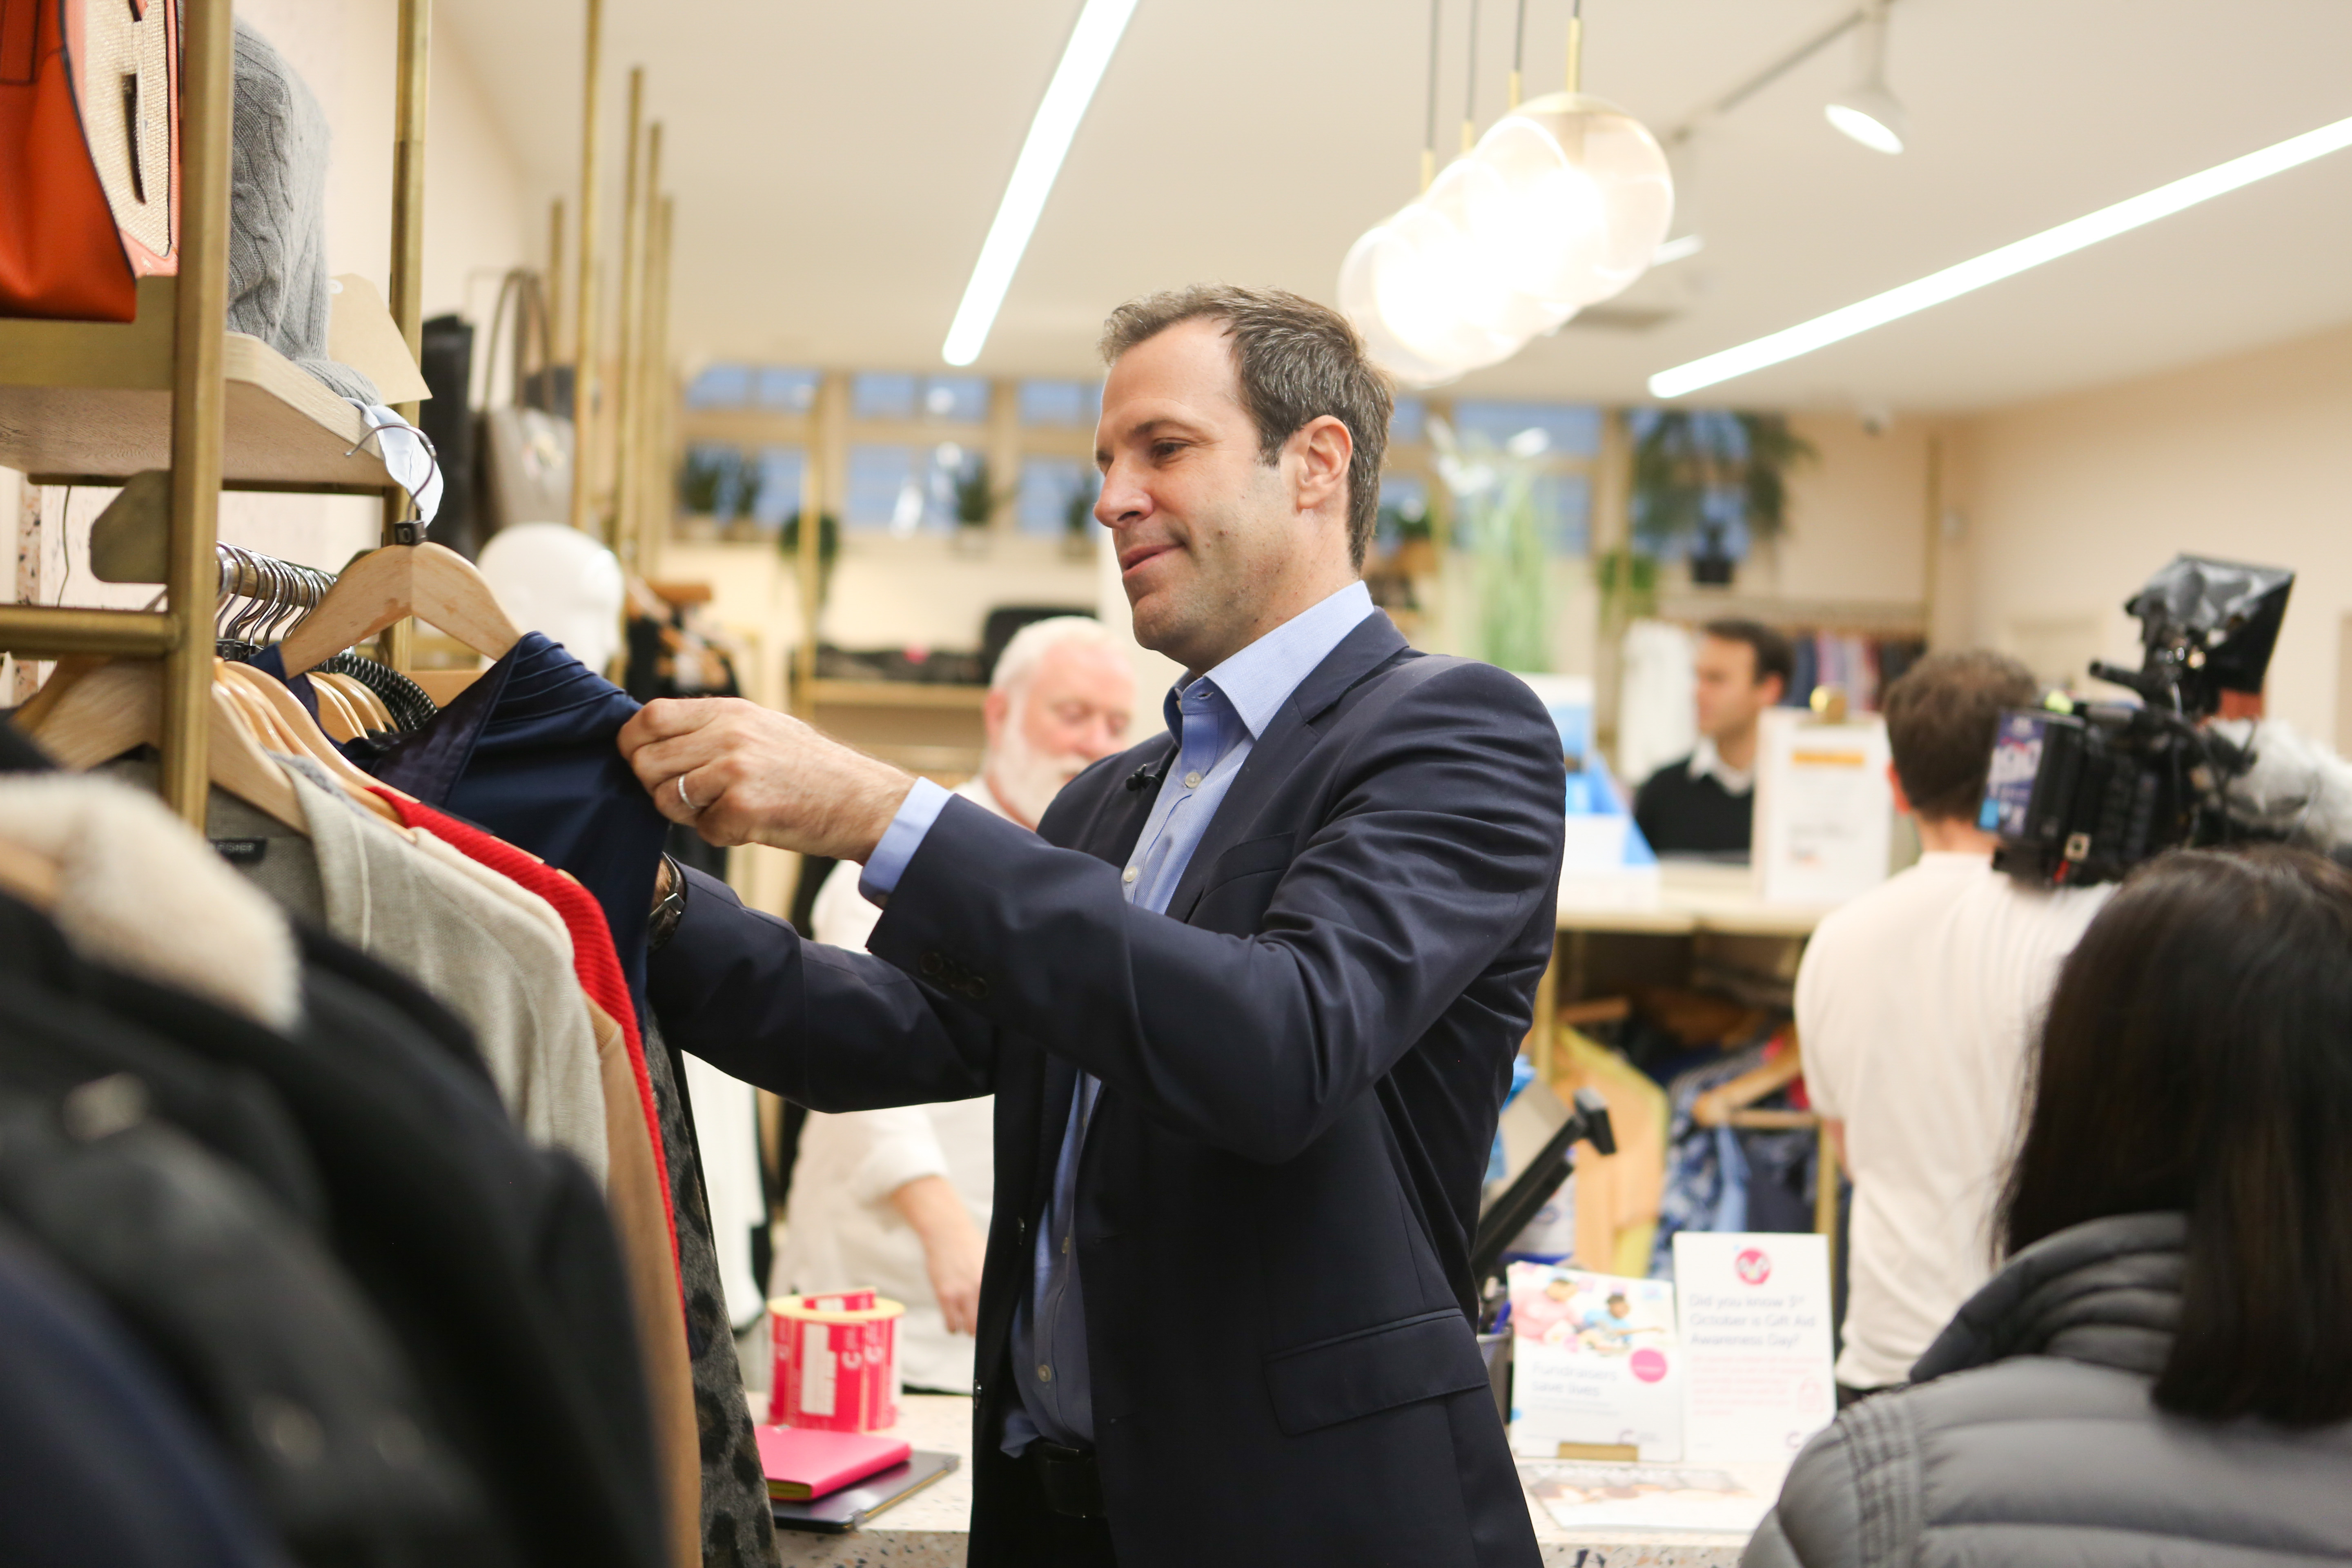 Greg Rusedski helped out at a Cancer Research UK shop to launch the charity's partnership with the Nitto ATP Finals